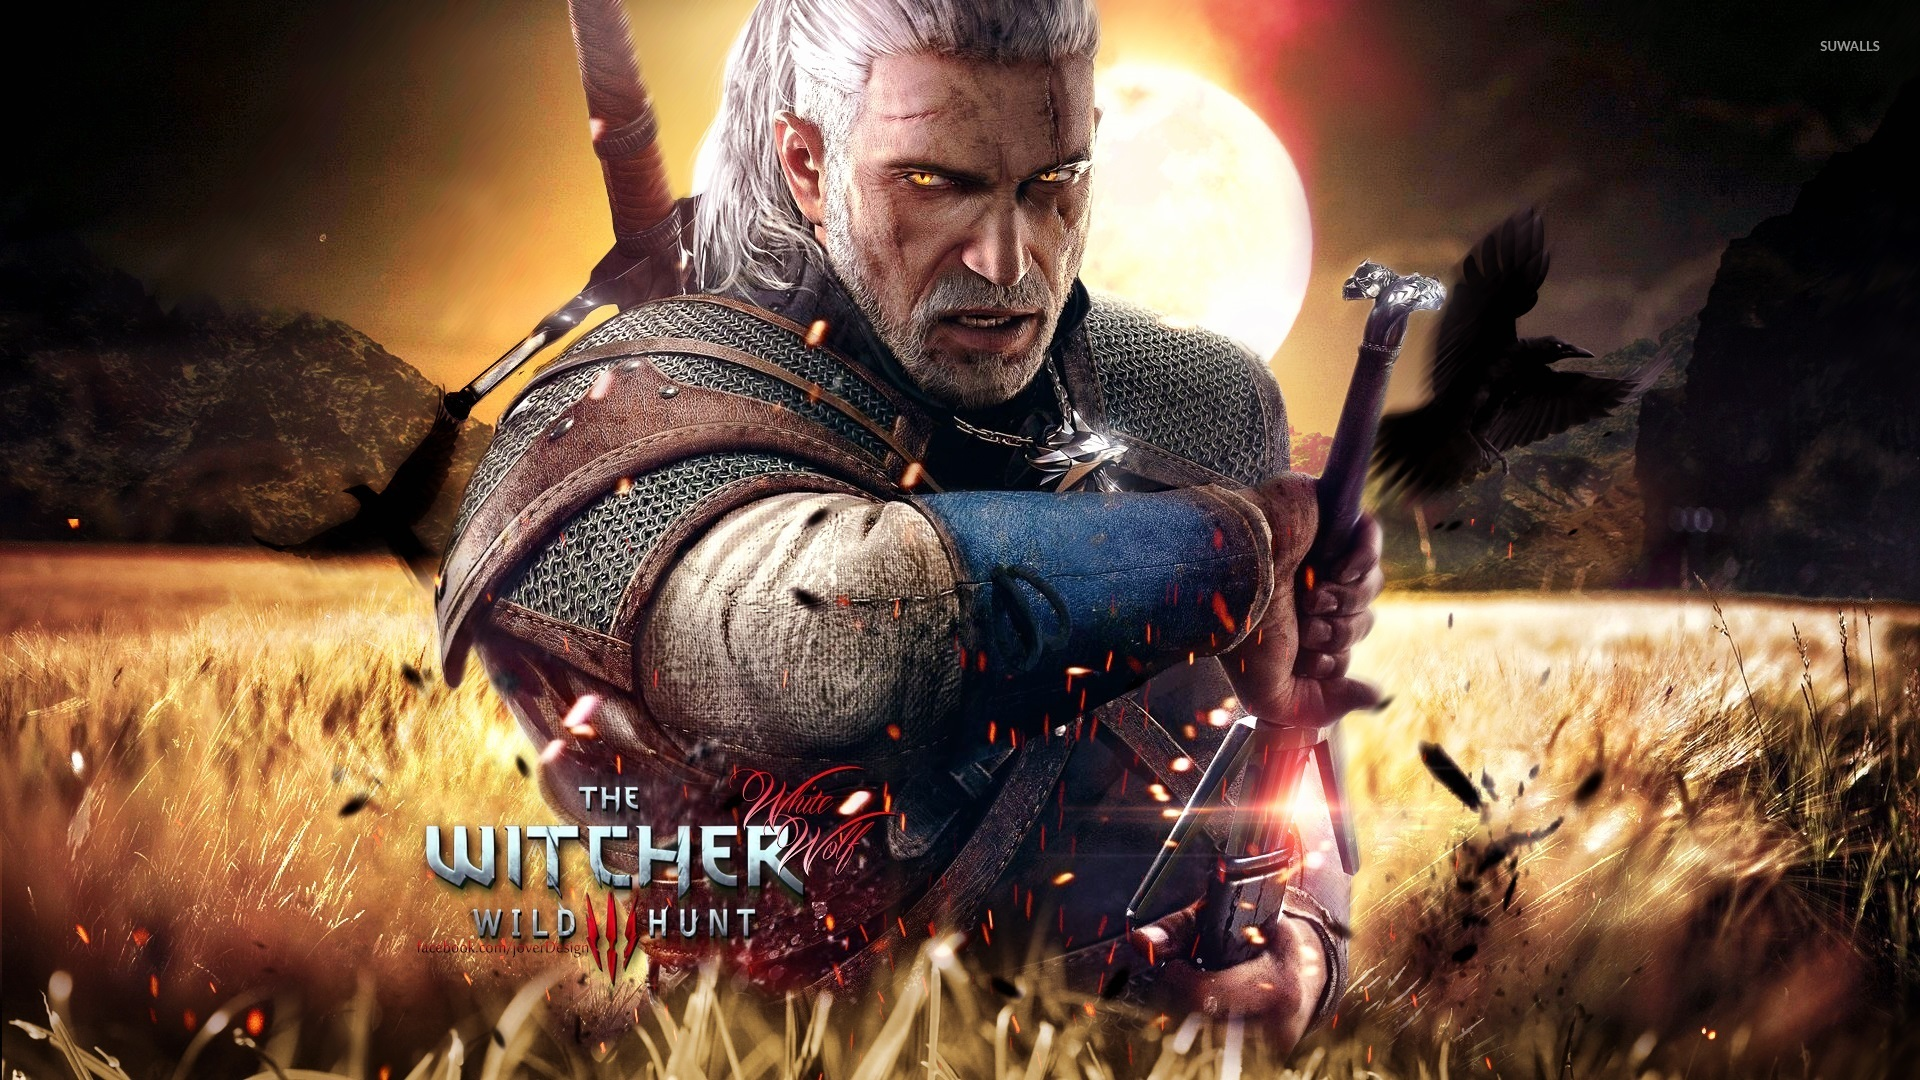 The Witcher Wild Hunt HD Wallpapers Backgrounds